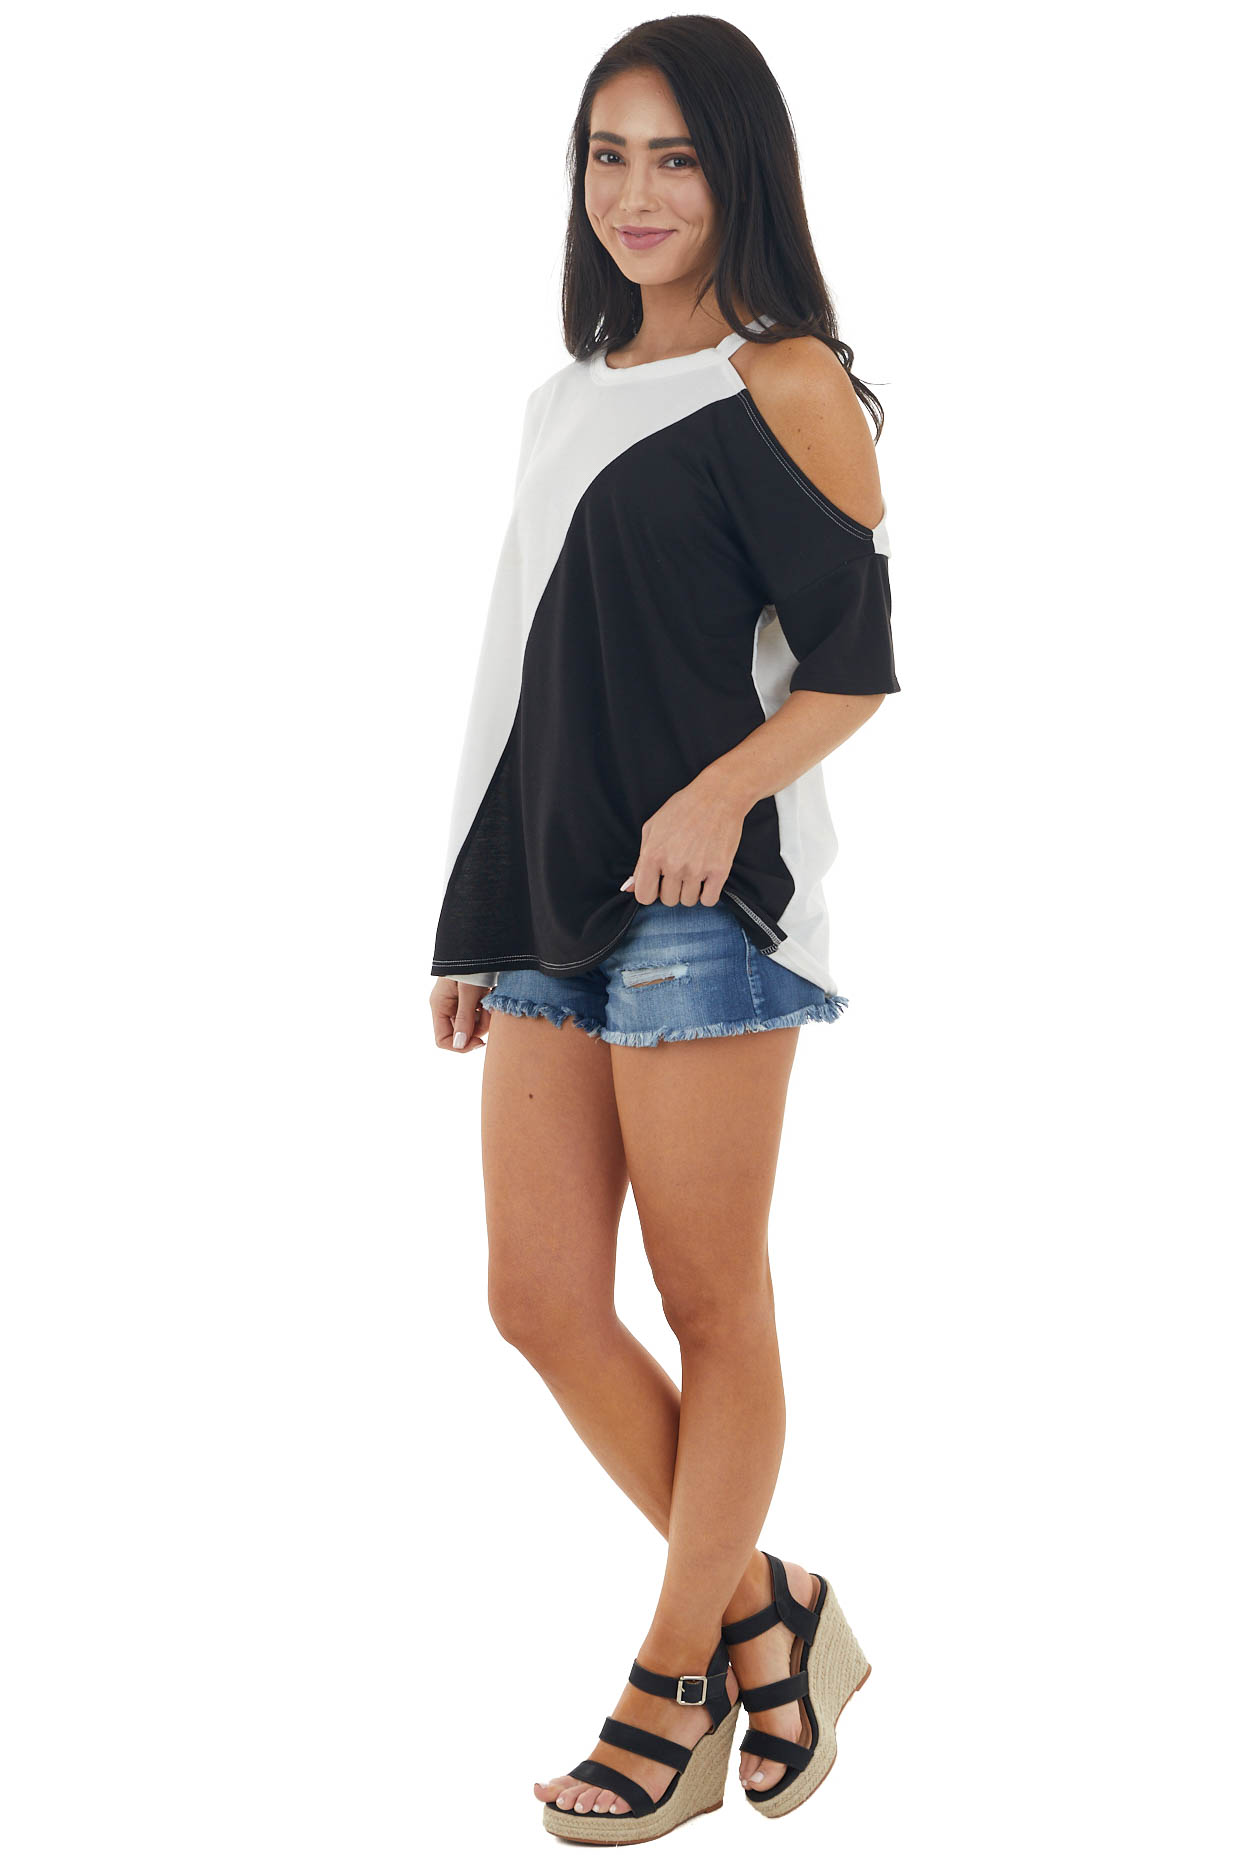 Ivory and Black Colorblock Knit Top with Cold Shoulder